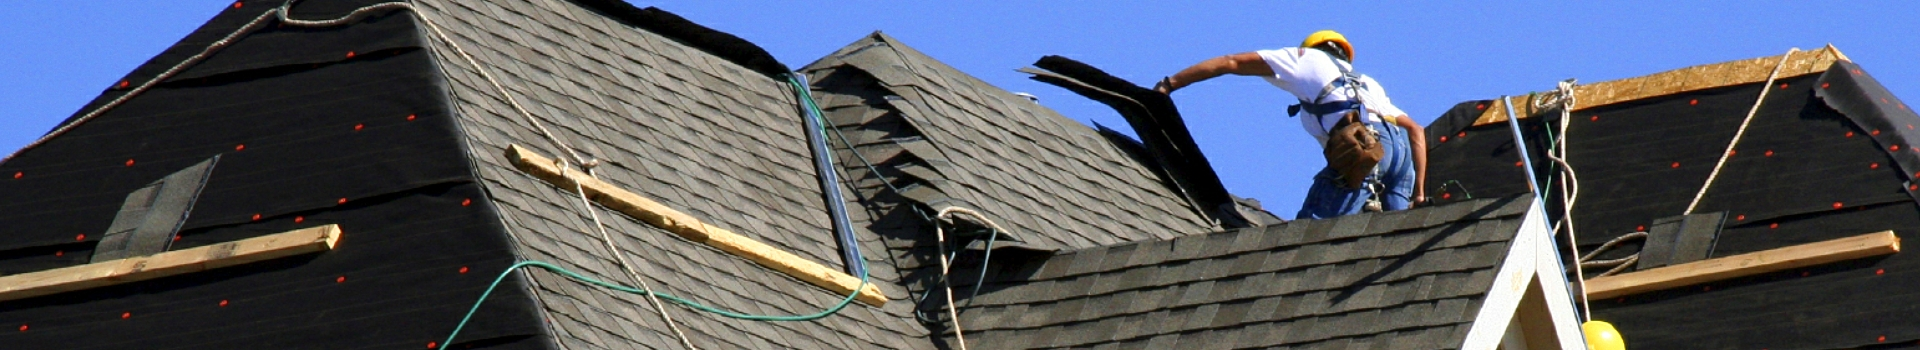 roofing-services-city-queen-creek